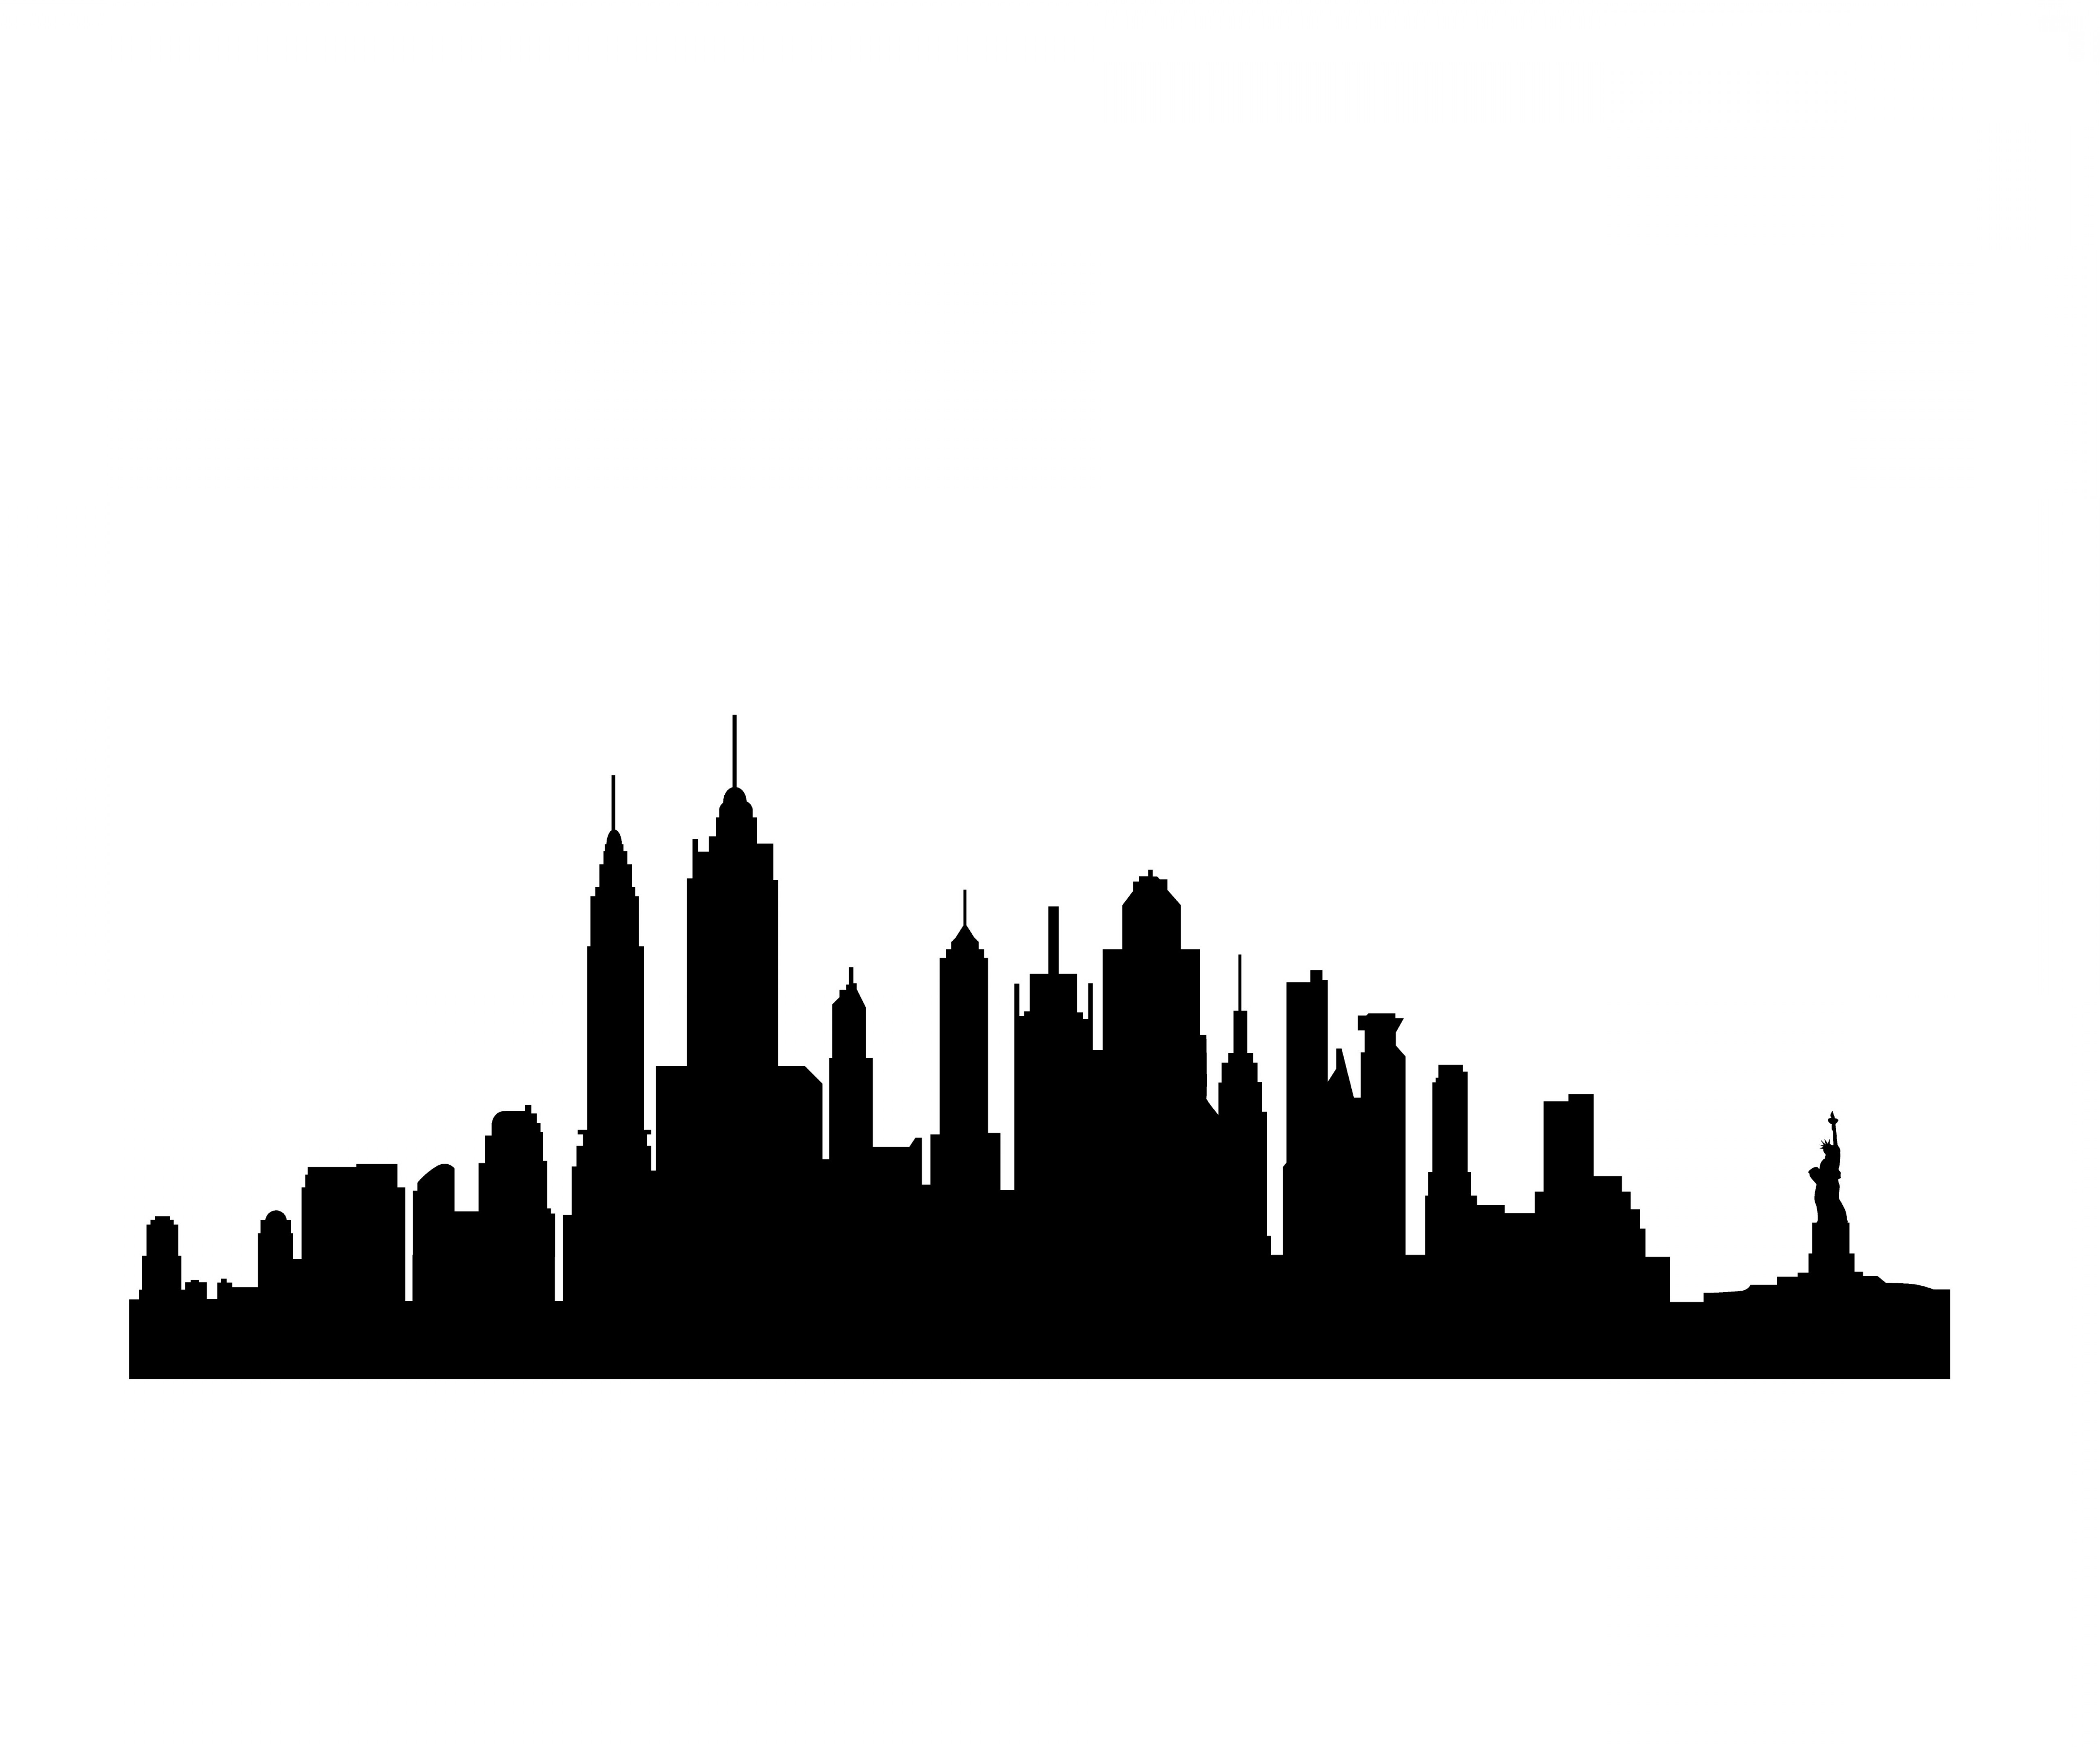 5184x4320 Miami clipart nyc skyline